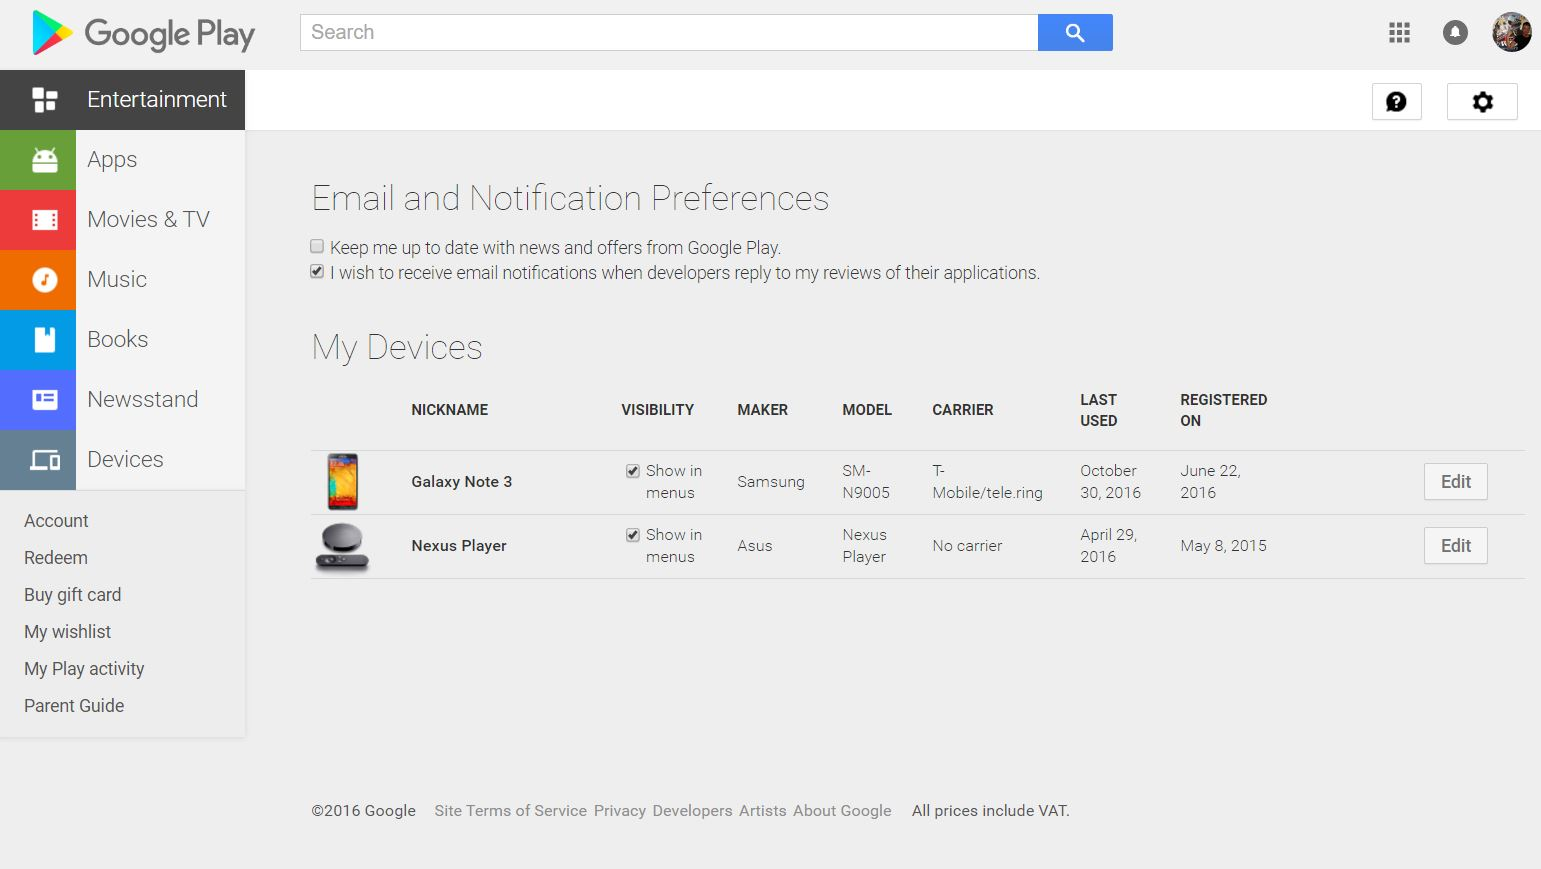 google-play-devices